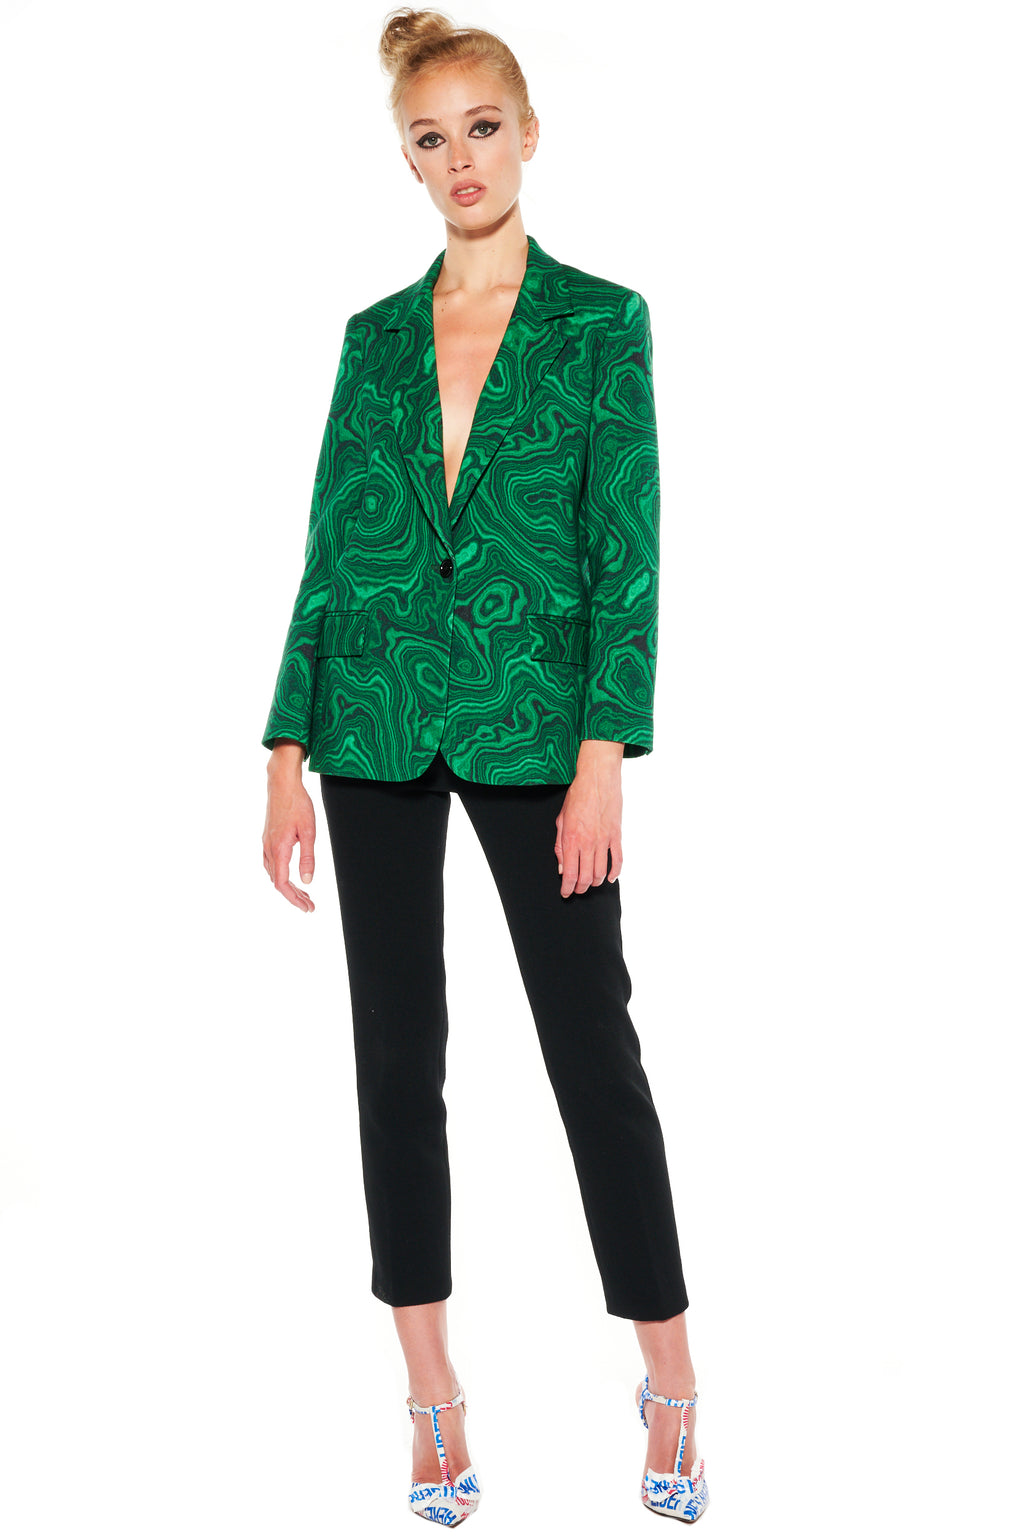 """HIGH AS A MALACHITE"" LONG BLAZER - Women's Jackets & Coats - Libertine"